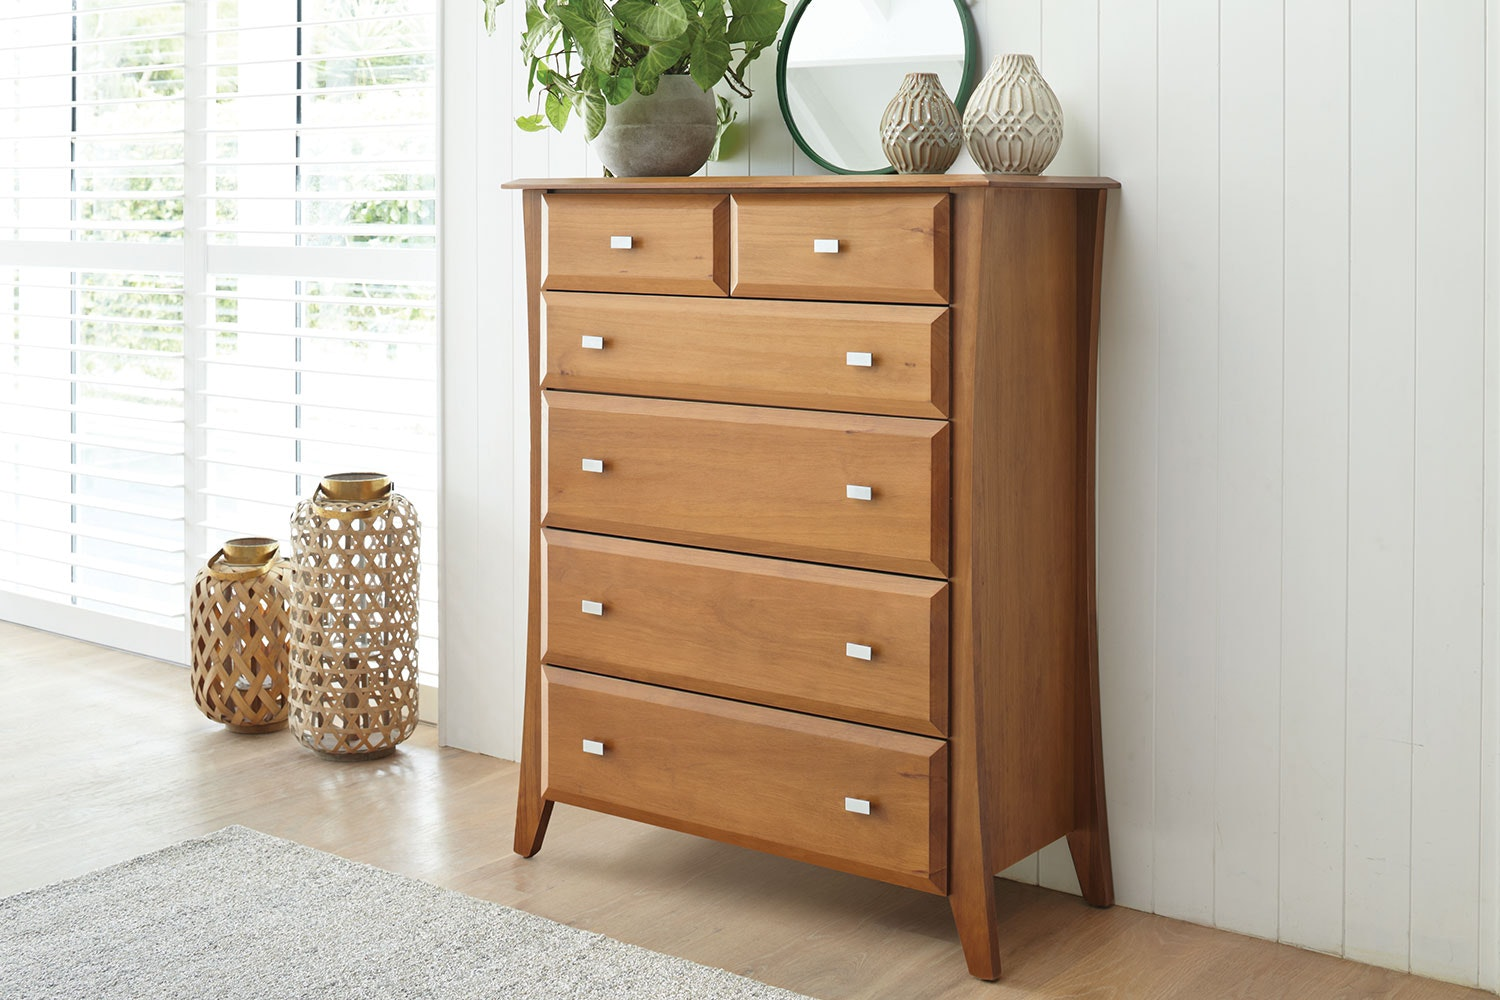 Lynbrook 4 Piece Tallboy Suite by Coastwood Furniture - Tallboy